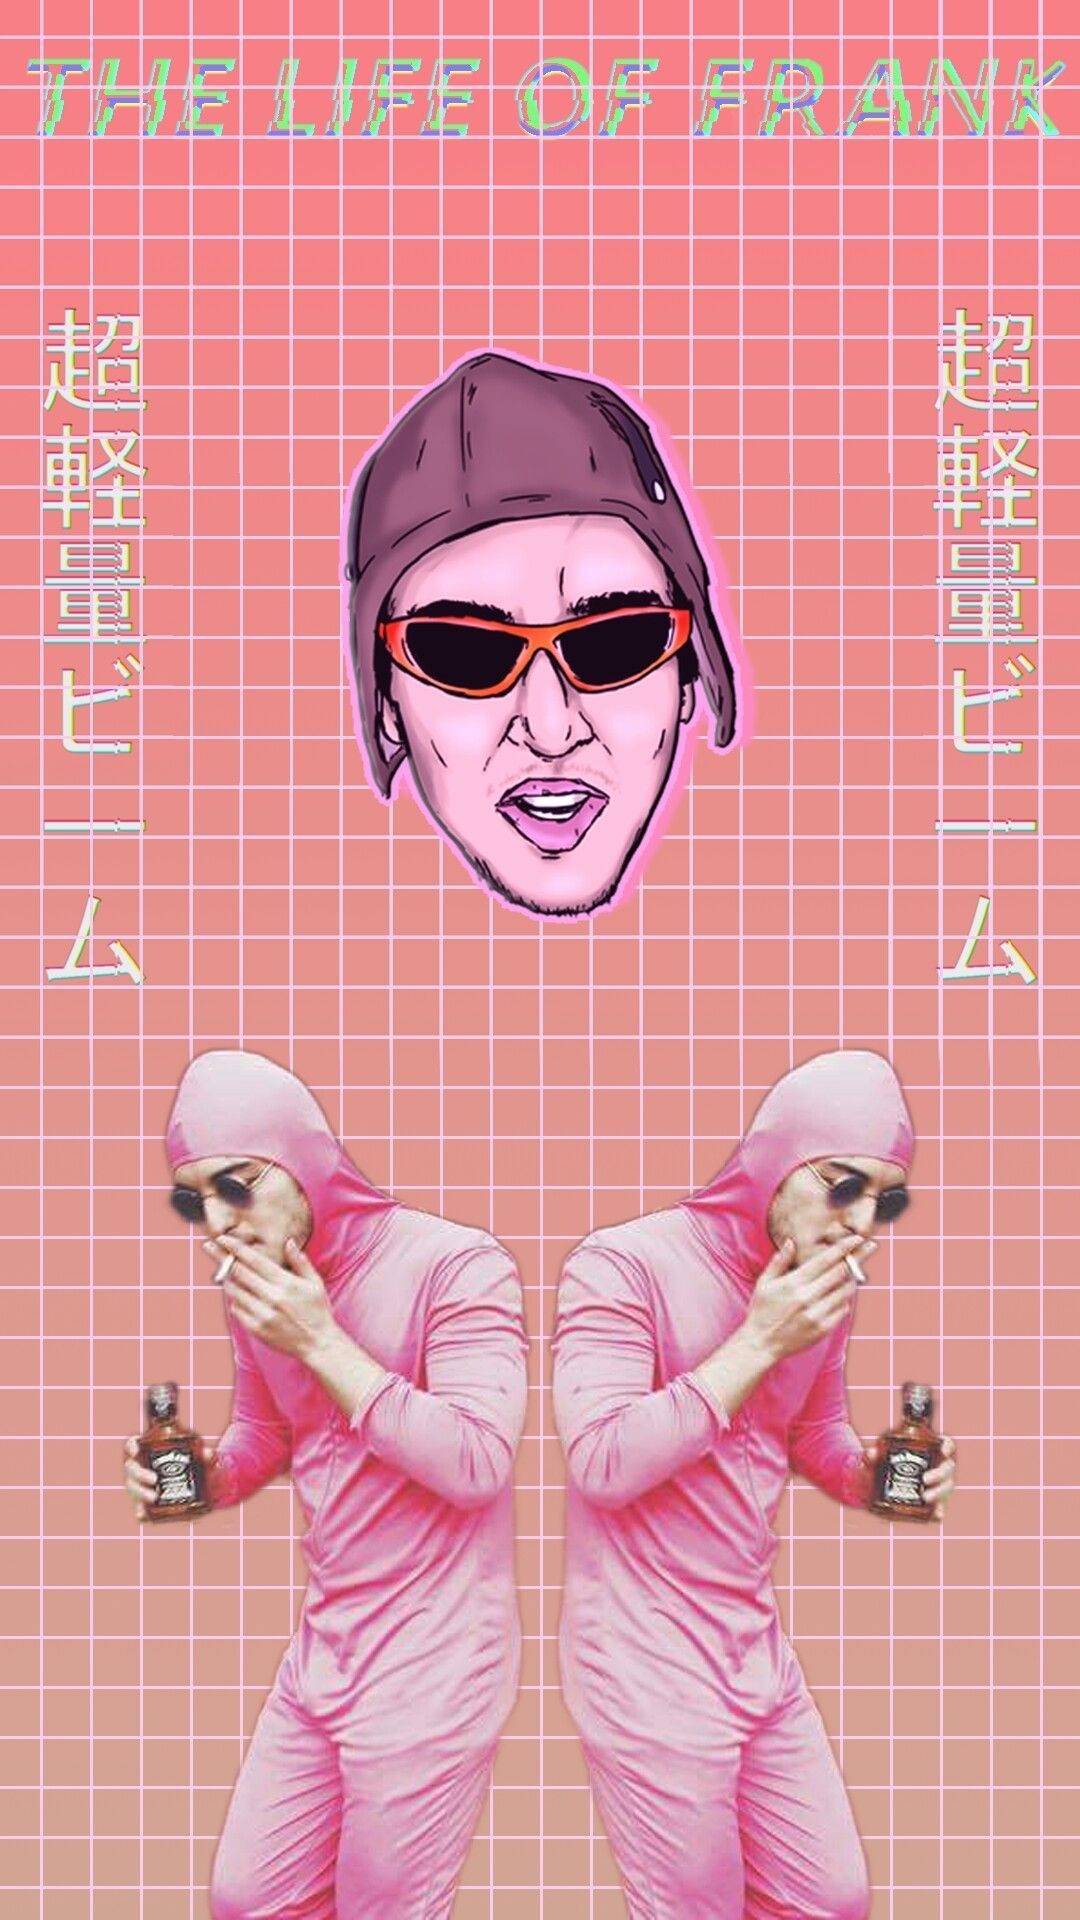 Filthy Frank Wallpaper Android Download   Filthy frank wallpaper, Android wallpaper, Wallpaper